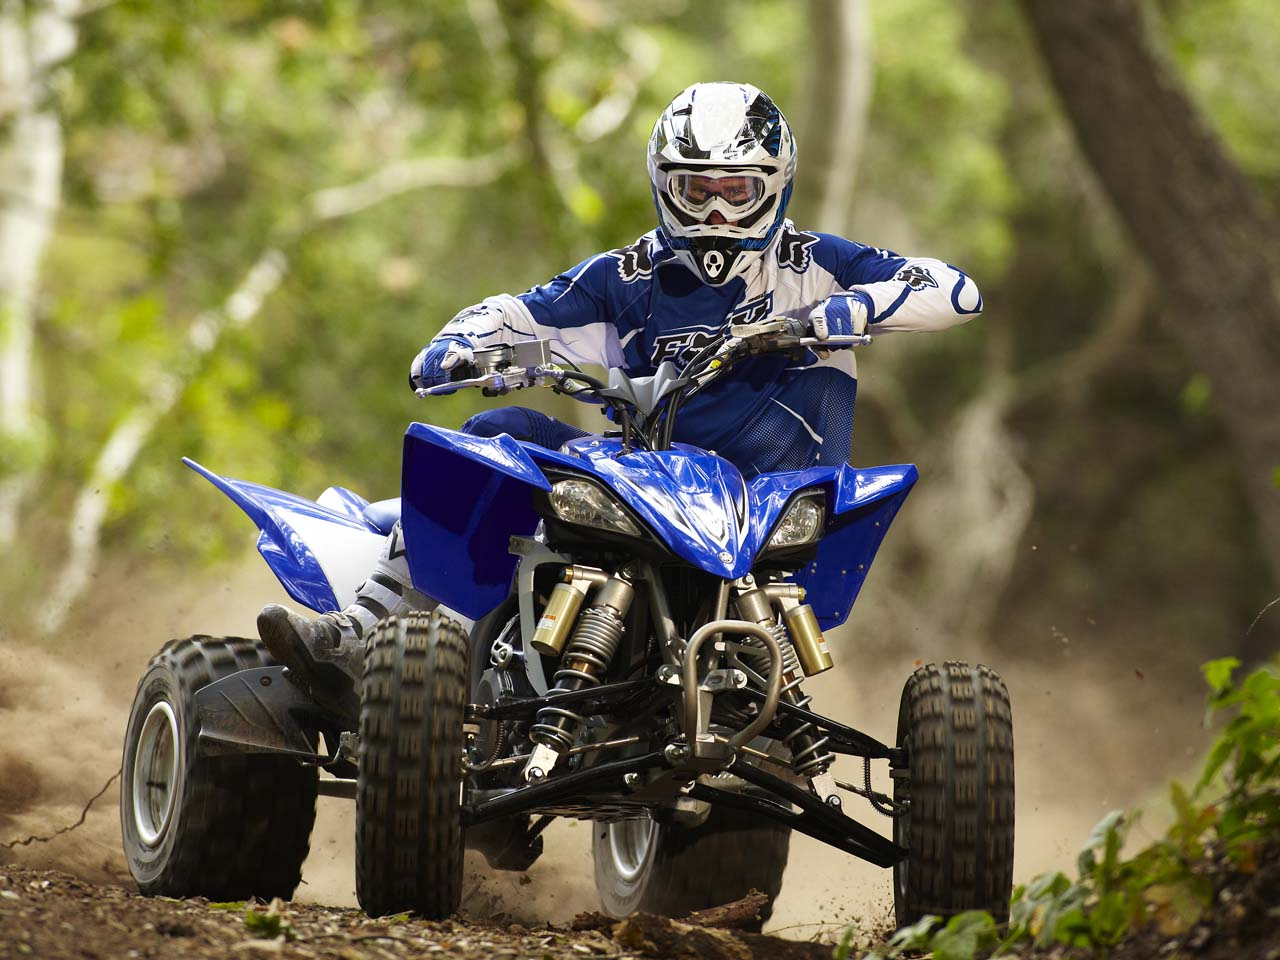 Best 450cc Hi Performance Atv The 2011 Yamaha Yfz 450x